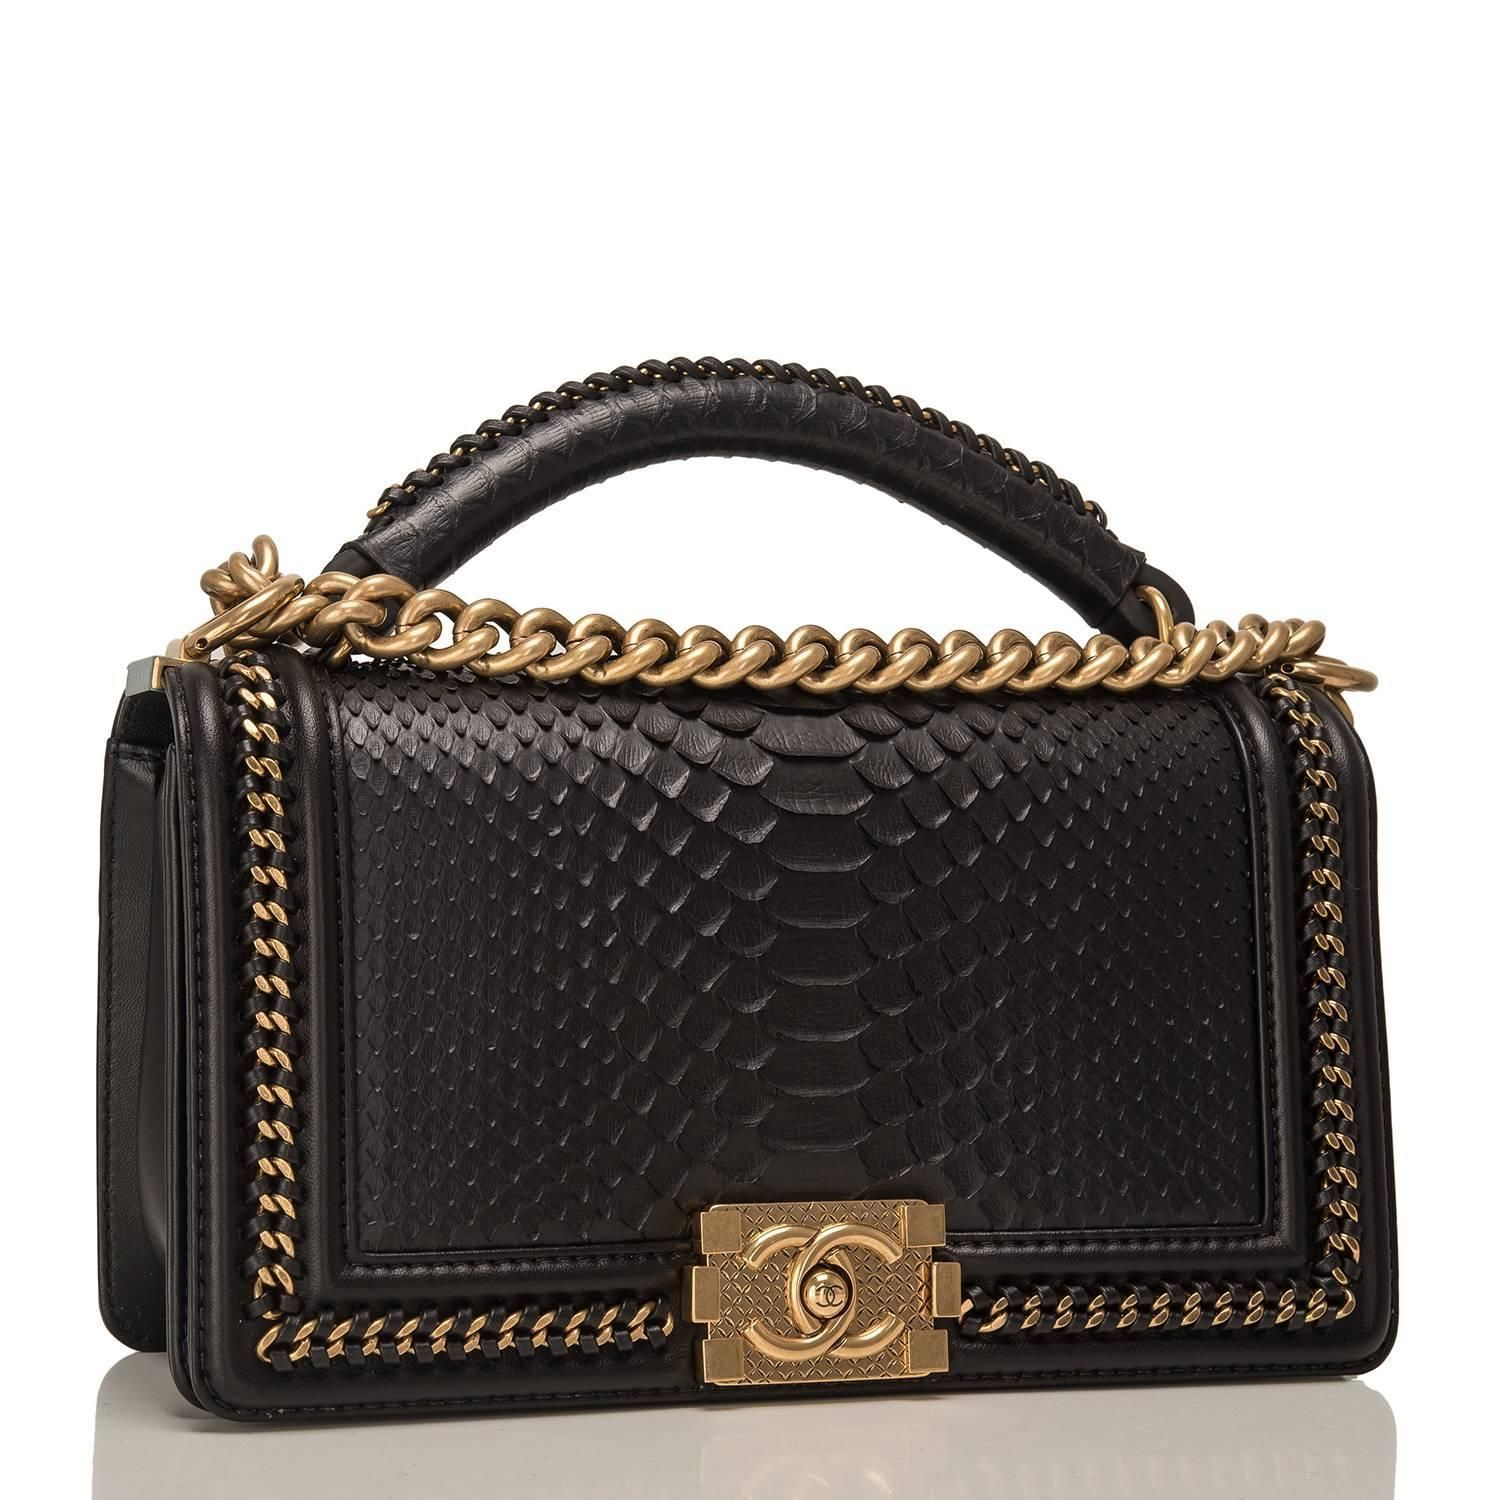 4db056ddf805cc Chanel Black Python Medium Boy Bag with Handle | My 1stdibs ...